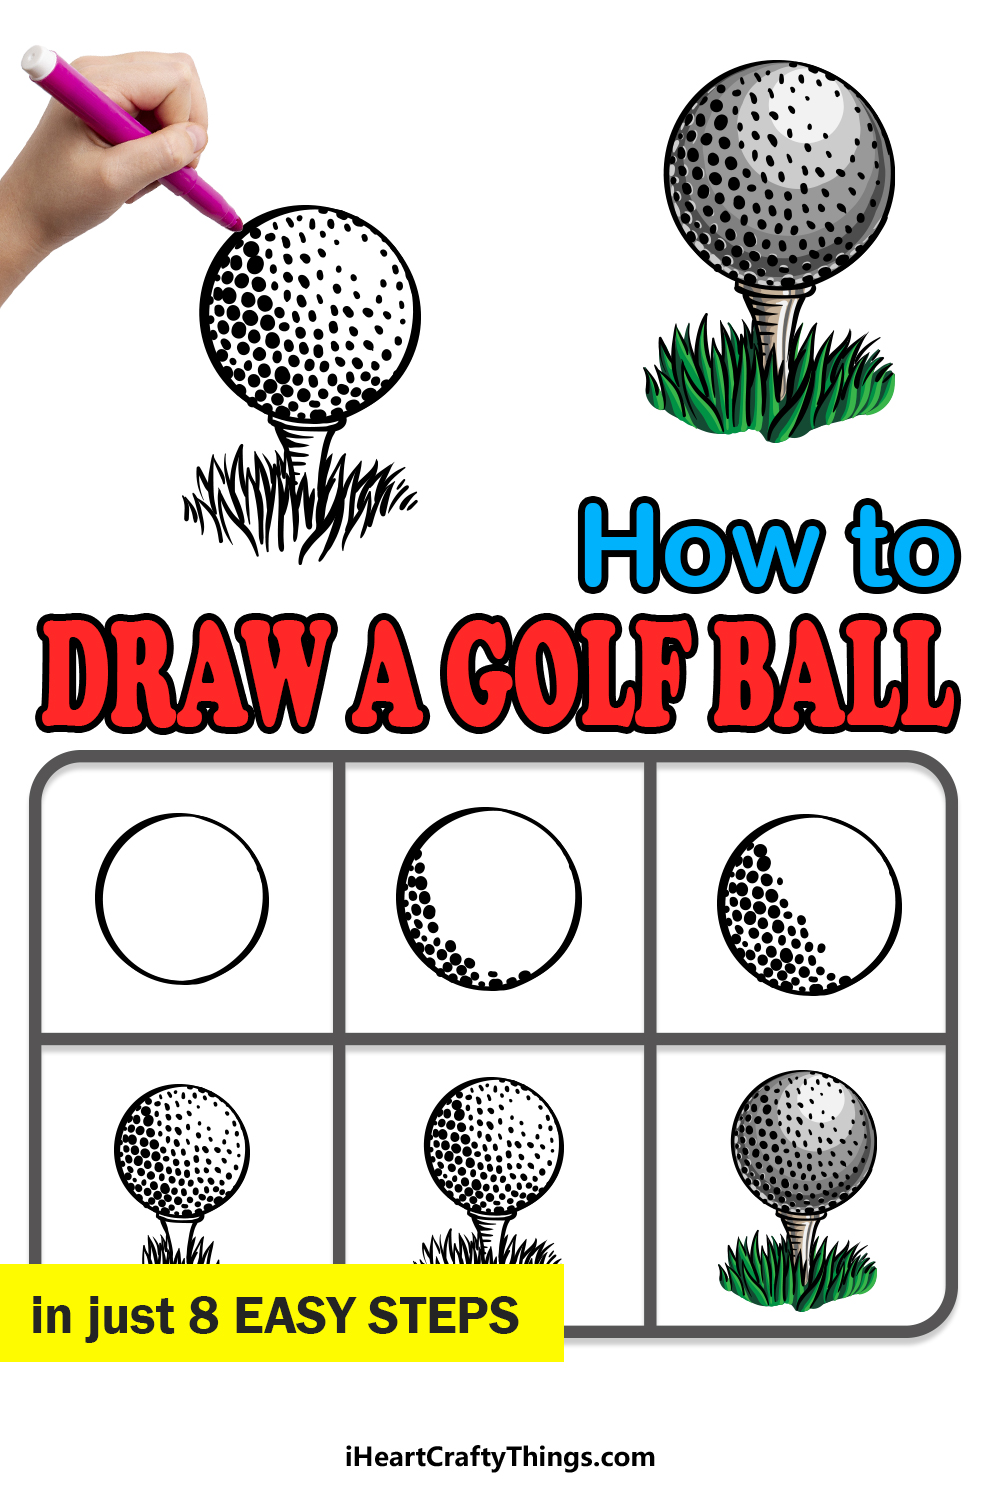 how to draw a golf ball in 8 easy steps